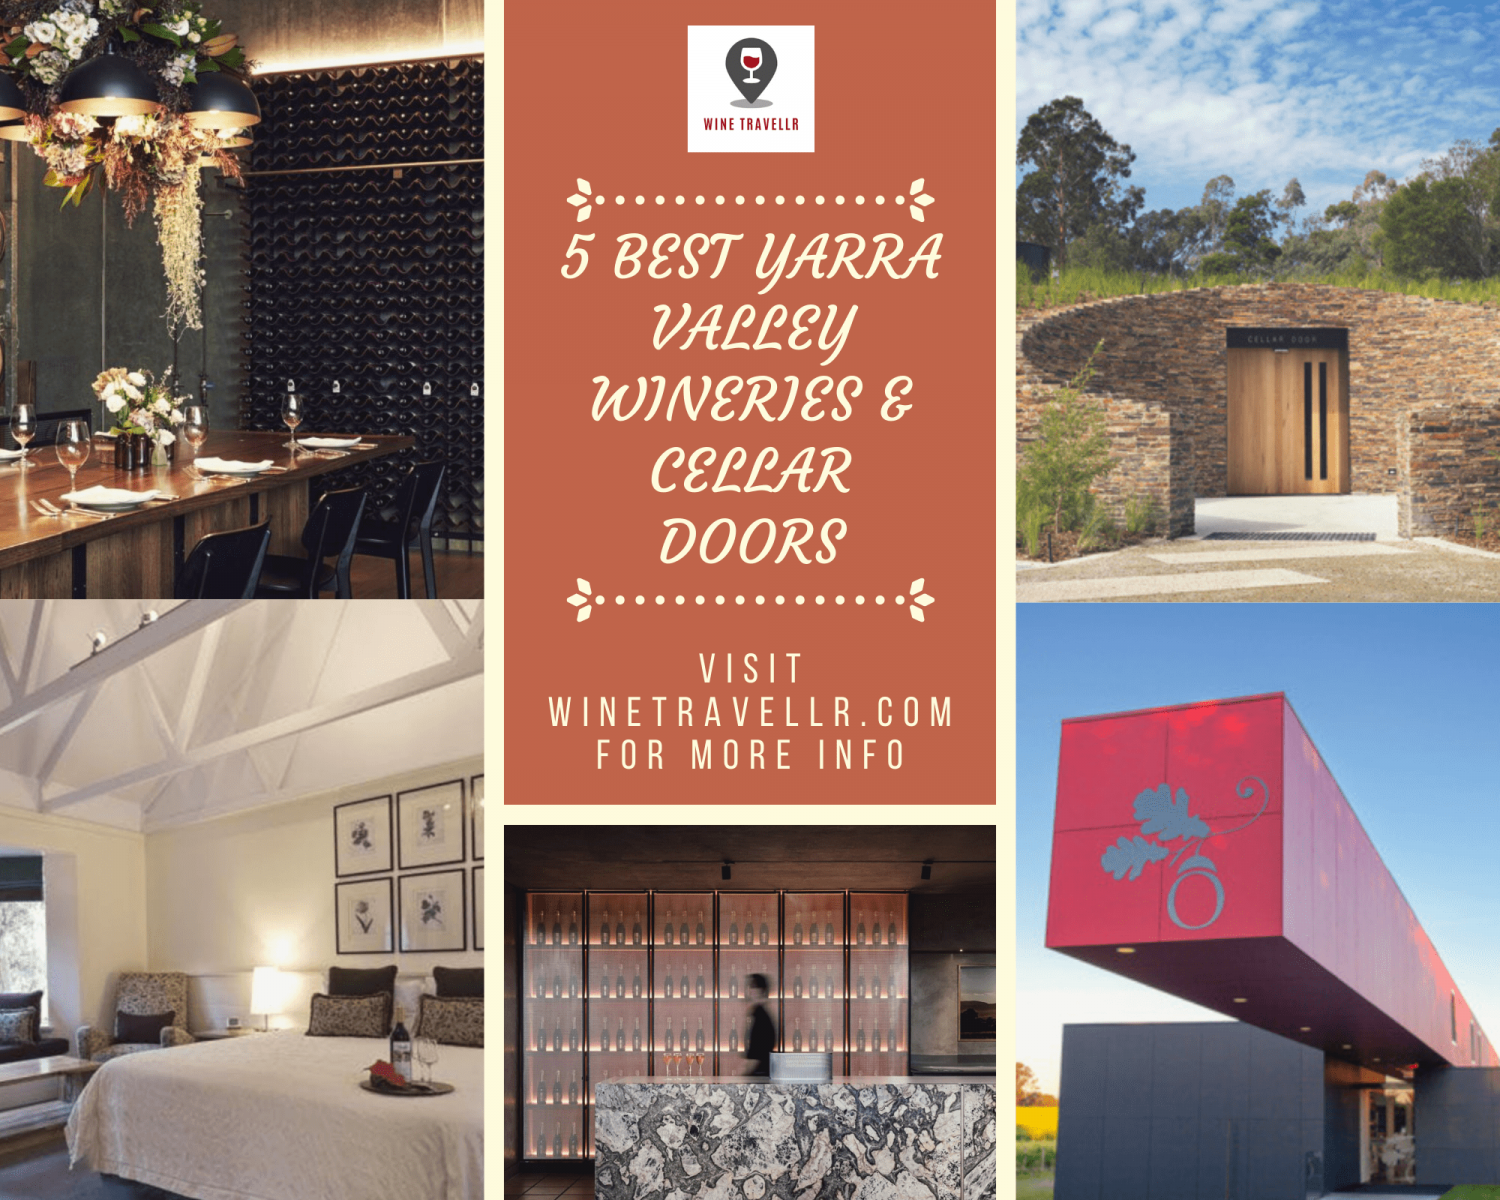 5 Best Yarra Valley Wineries & Cellar Doors  Infographic